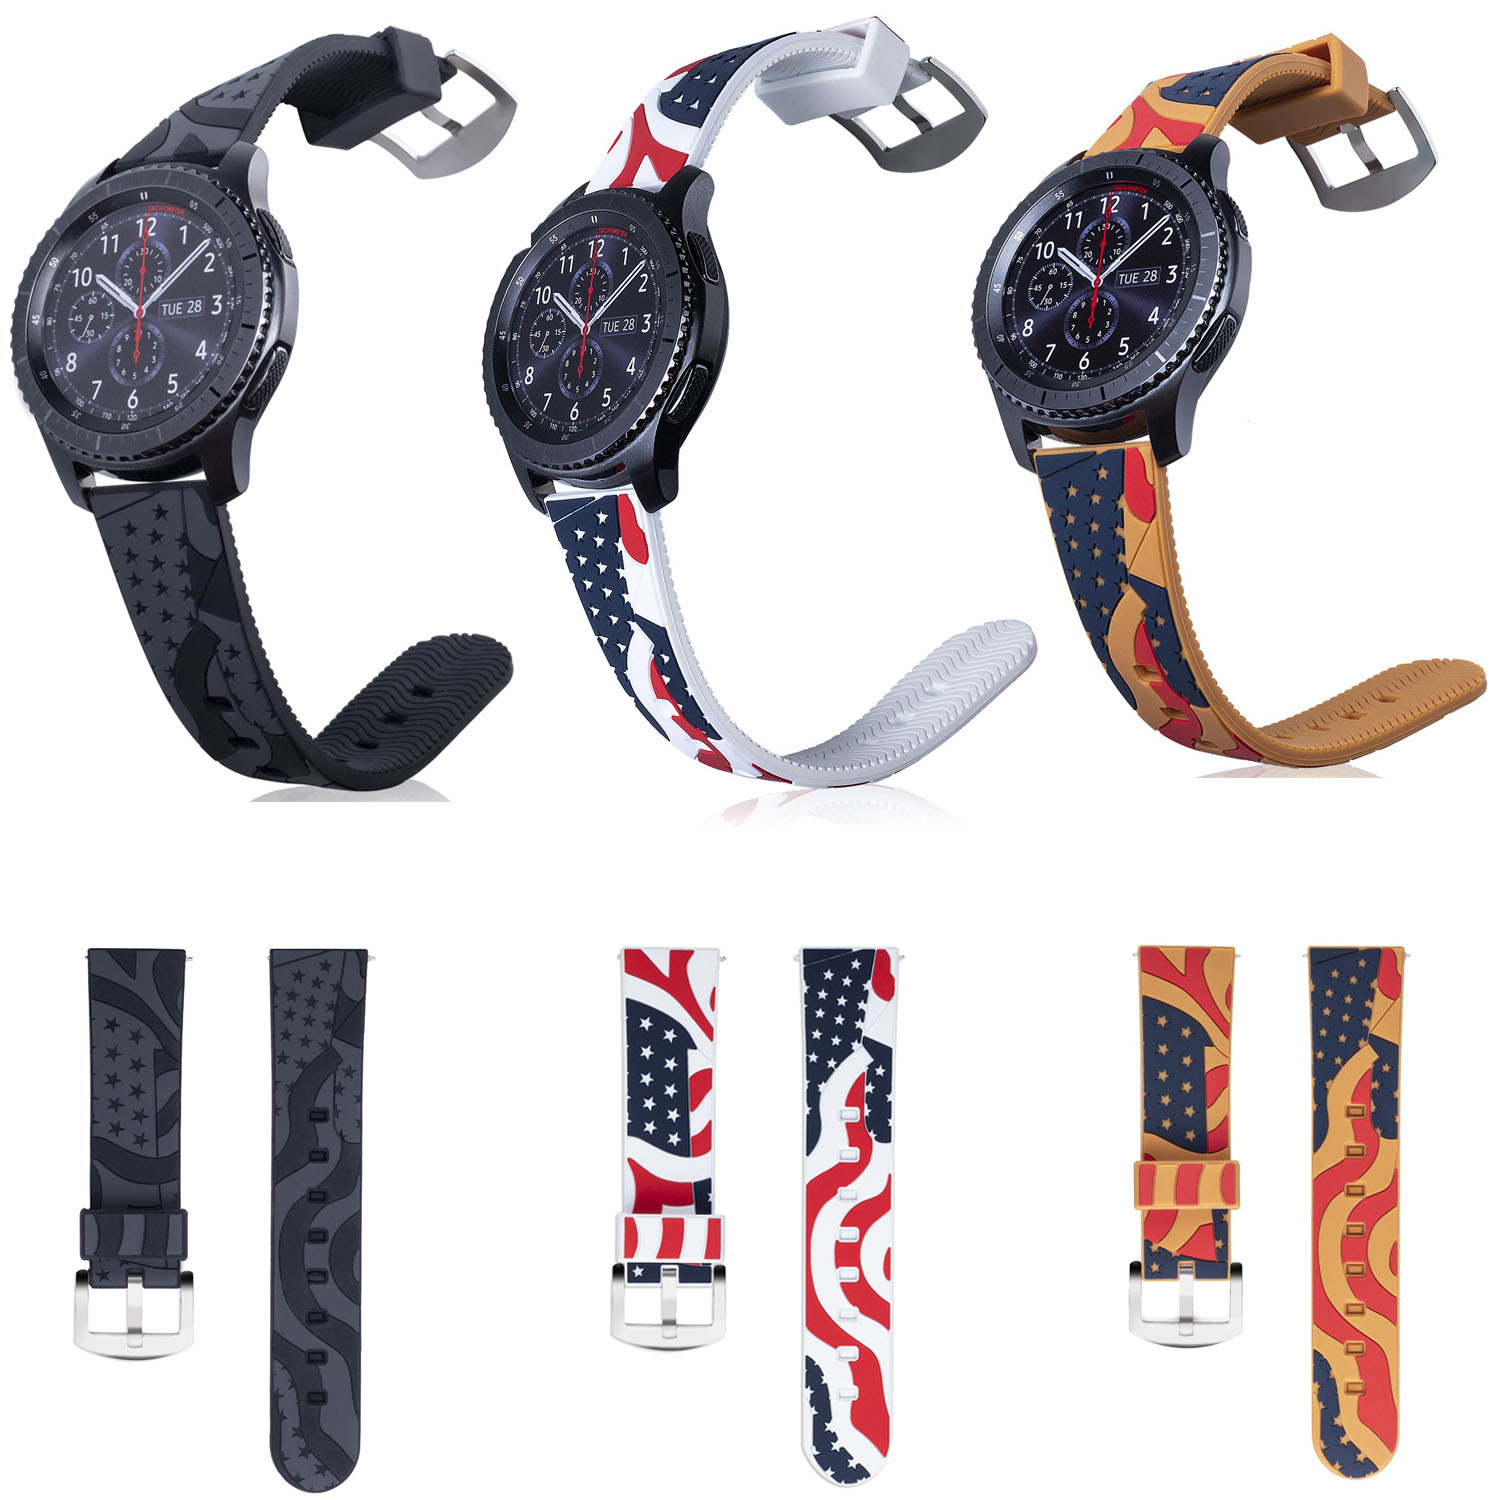 The American Flag Stars and Stripes Silicone Band for Samsung Gear S3 Frontier Strap for Gear S3 Classic Smart Watch Bracelet brush cutter 28mm x 10t gear box for oleomac oleo mac sparta 37 42 44 trimmer gear case assy